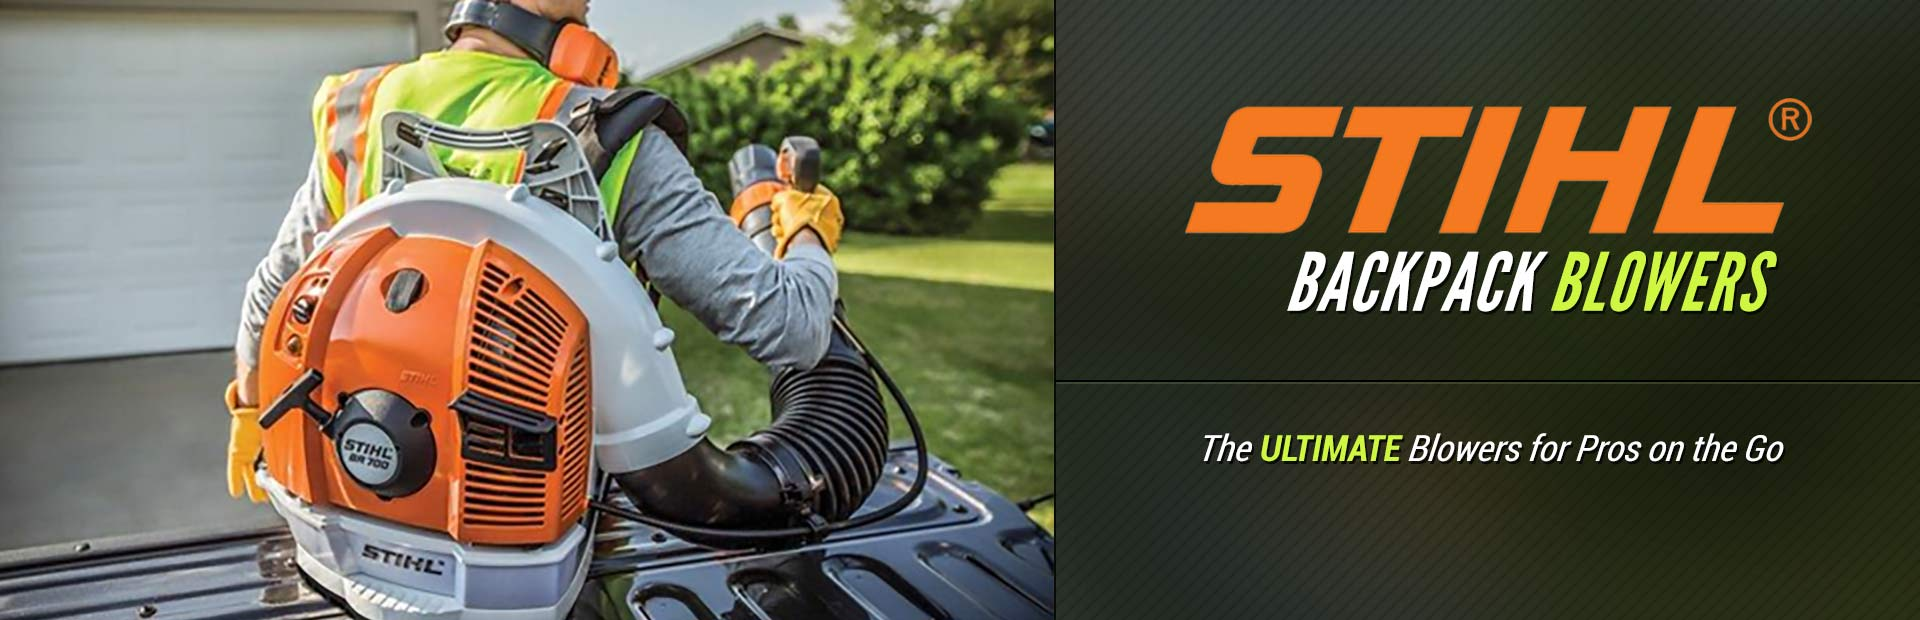 STIHL Backpack Blowers: Click here to view the models.